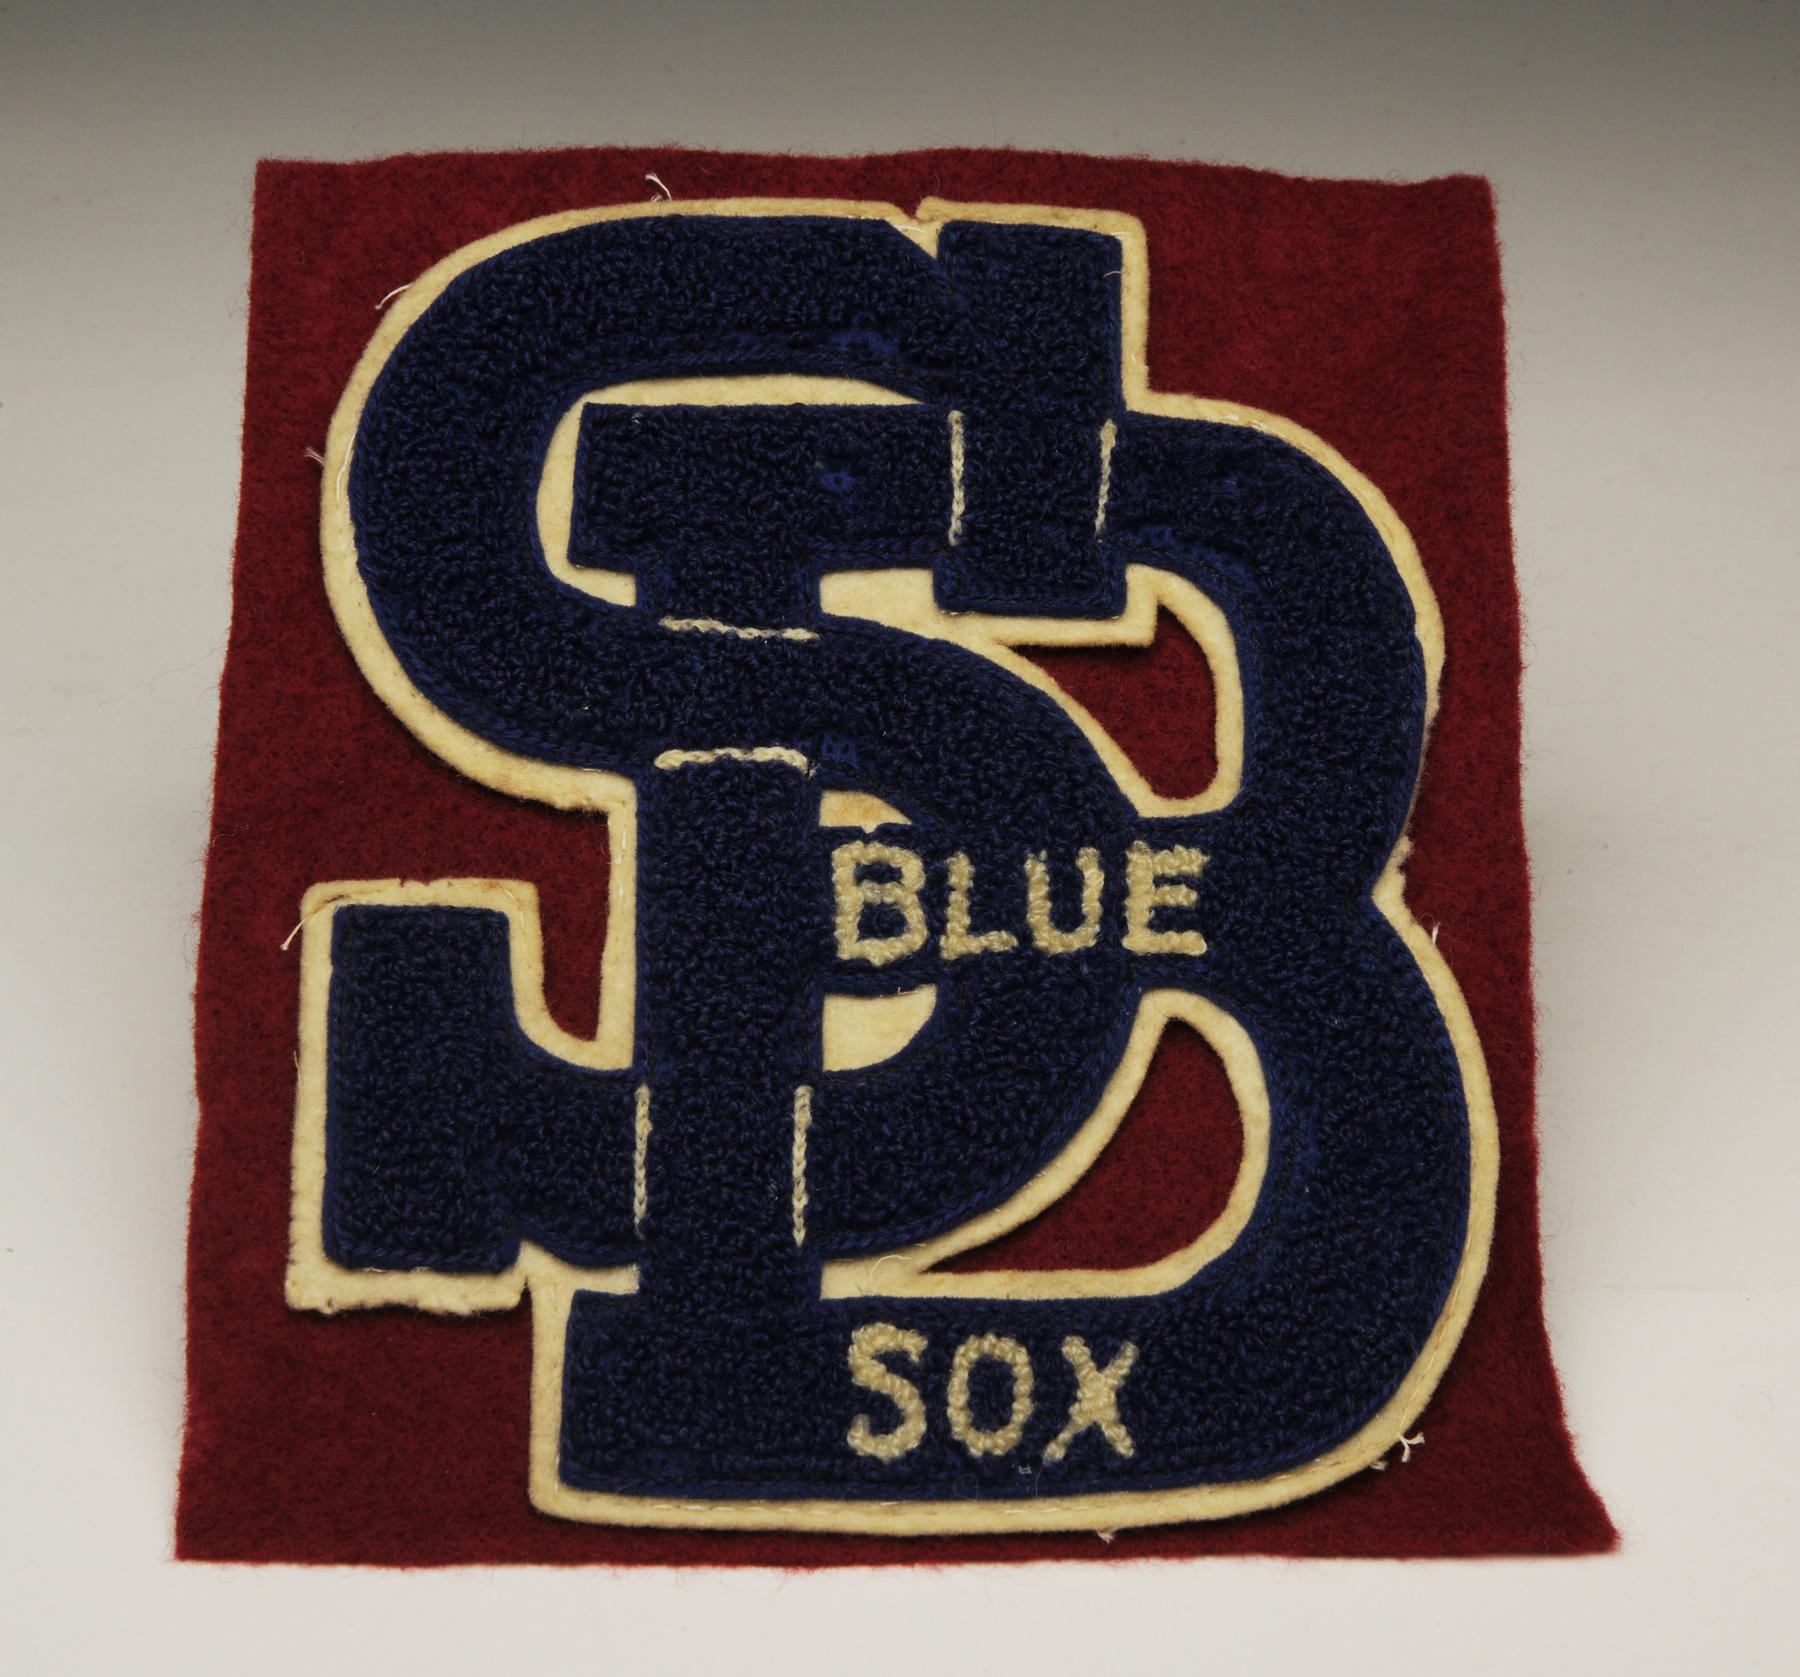 South Bend Blue Sox uniform patch worn by Dolly Brumfield-White of the All-American Girls' Professional Baseball League in 1947. - B-84.2003 (Milo Stewart, Jr. / National Baseball Hall of Fame)